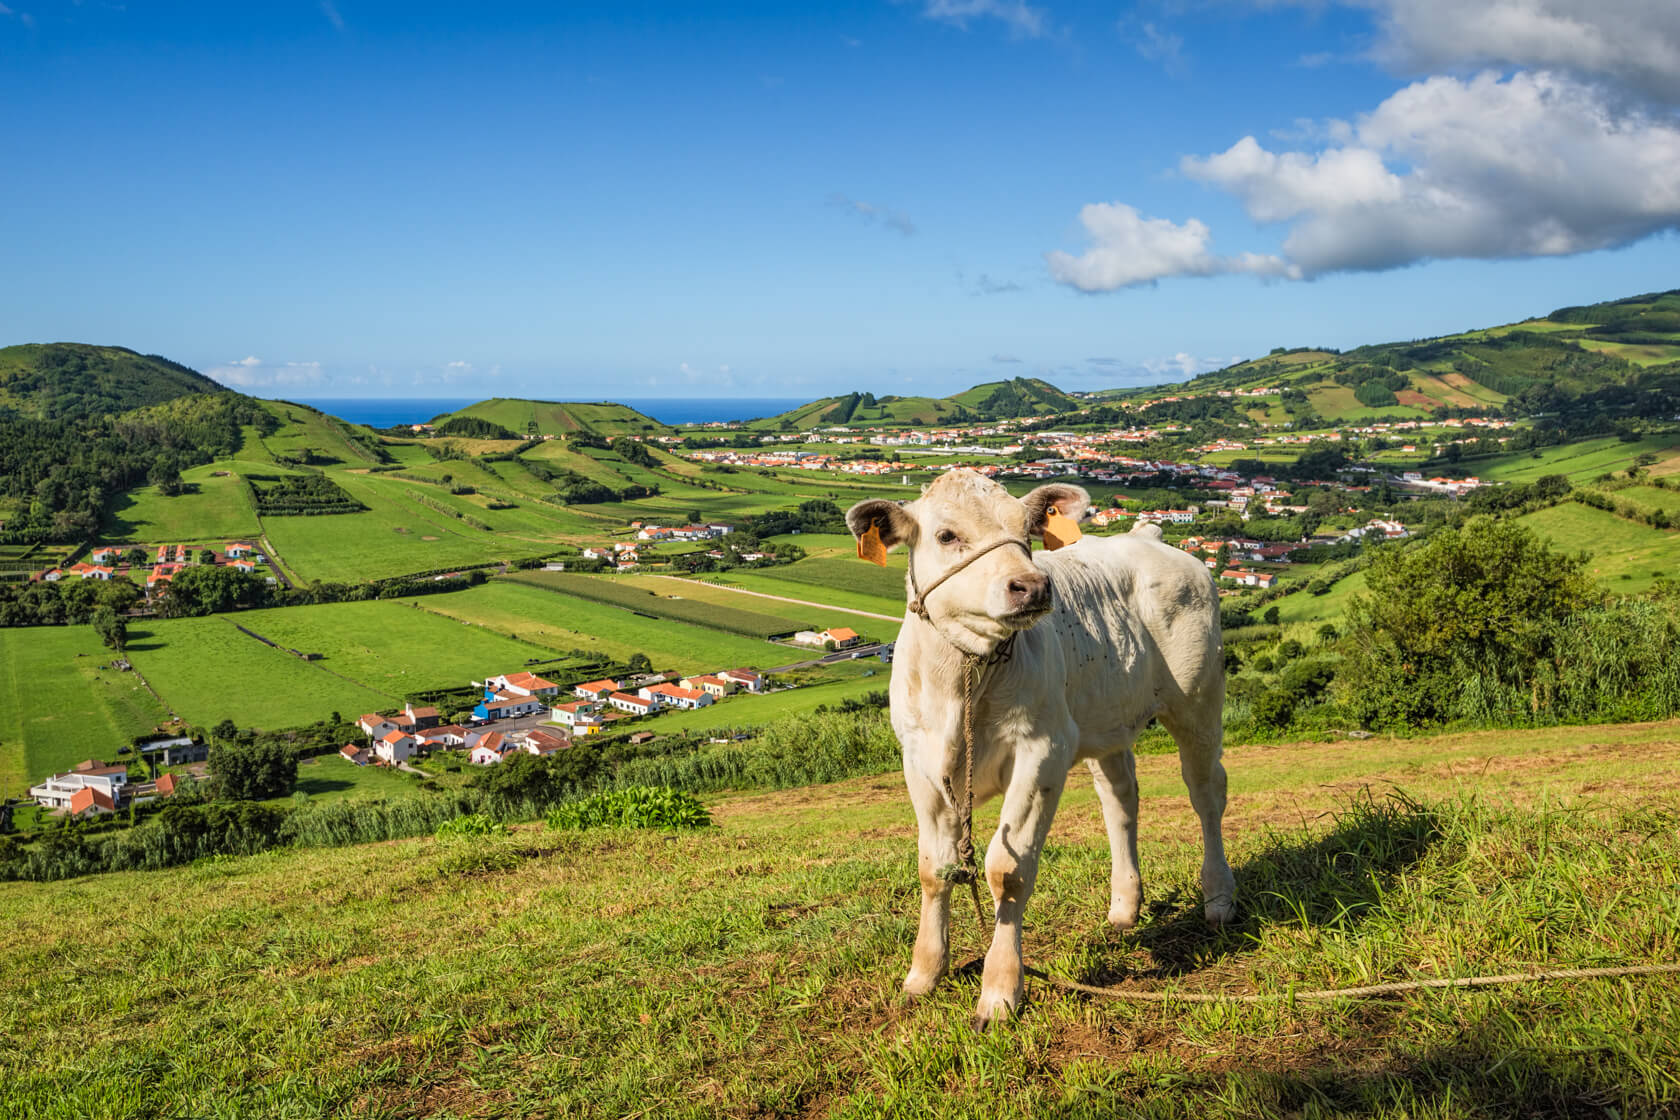 A cow in the Azores